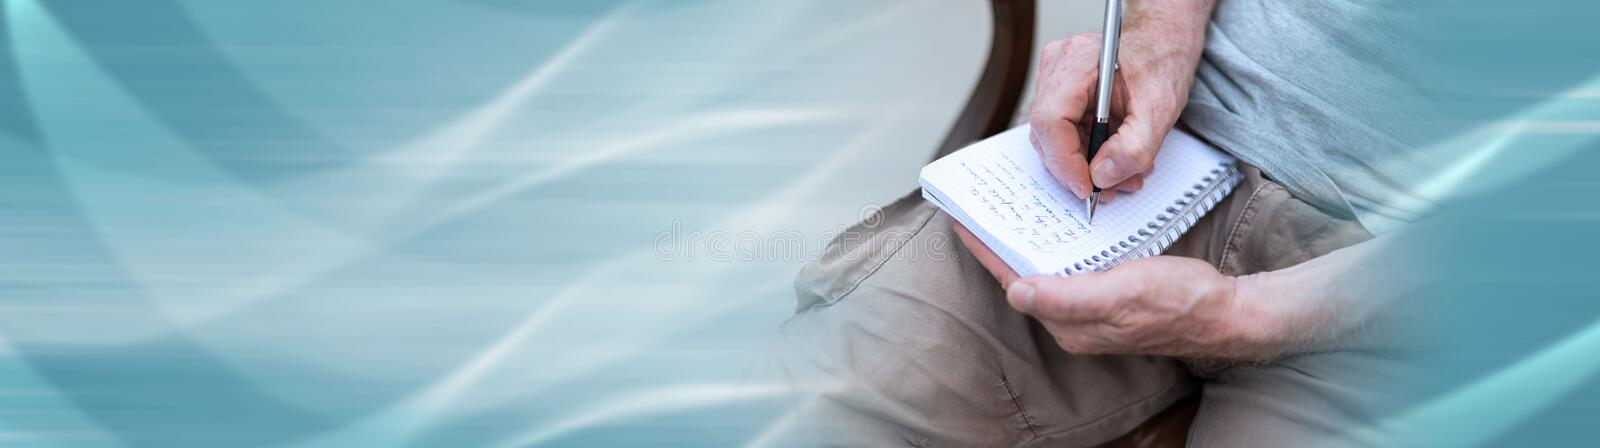 Man taking notes on a pocket book. panoramic banner. Man sitting outdoor taking notes on a pocket book. panoramic banner vector illustration